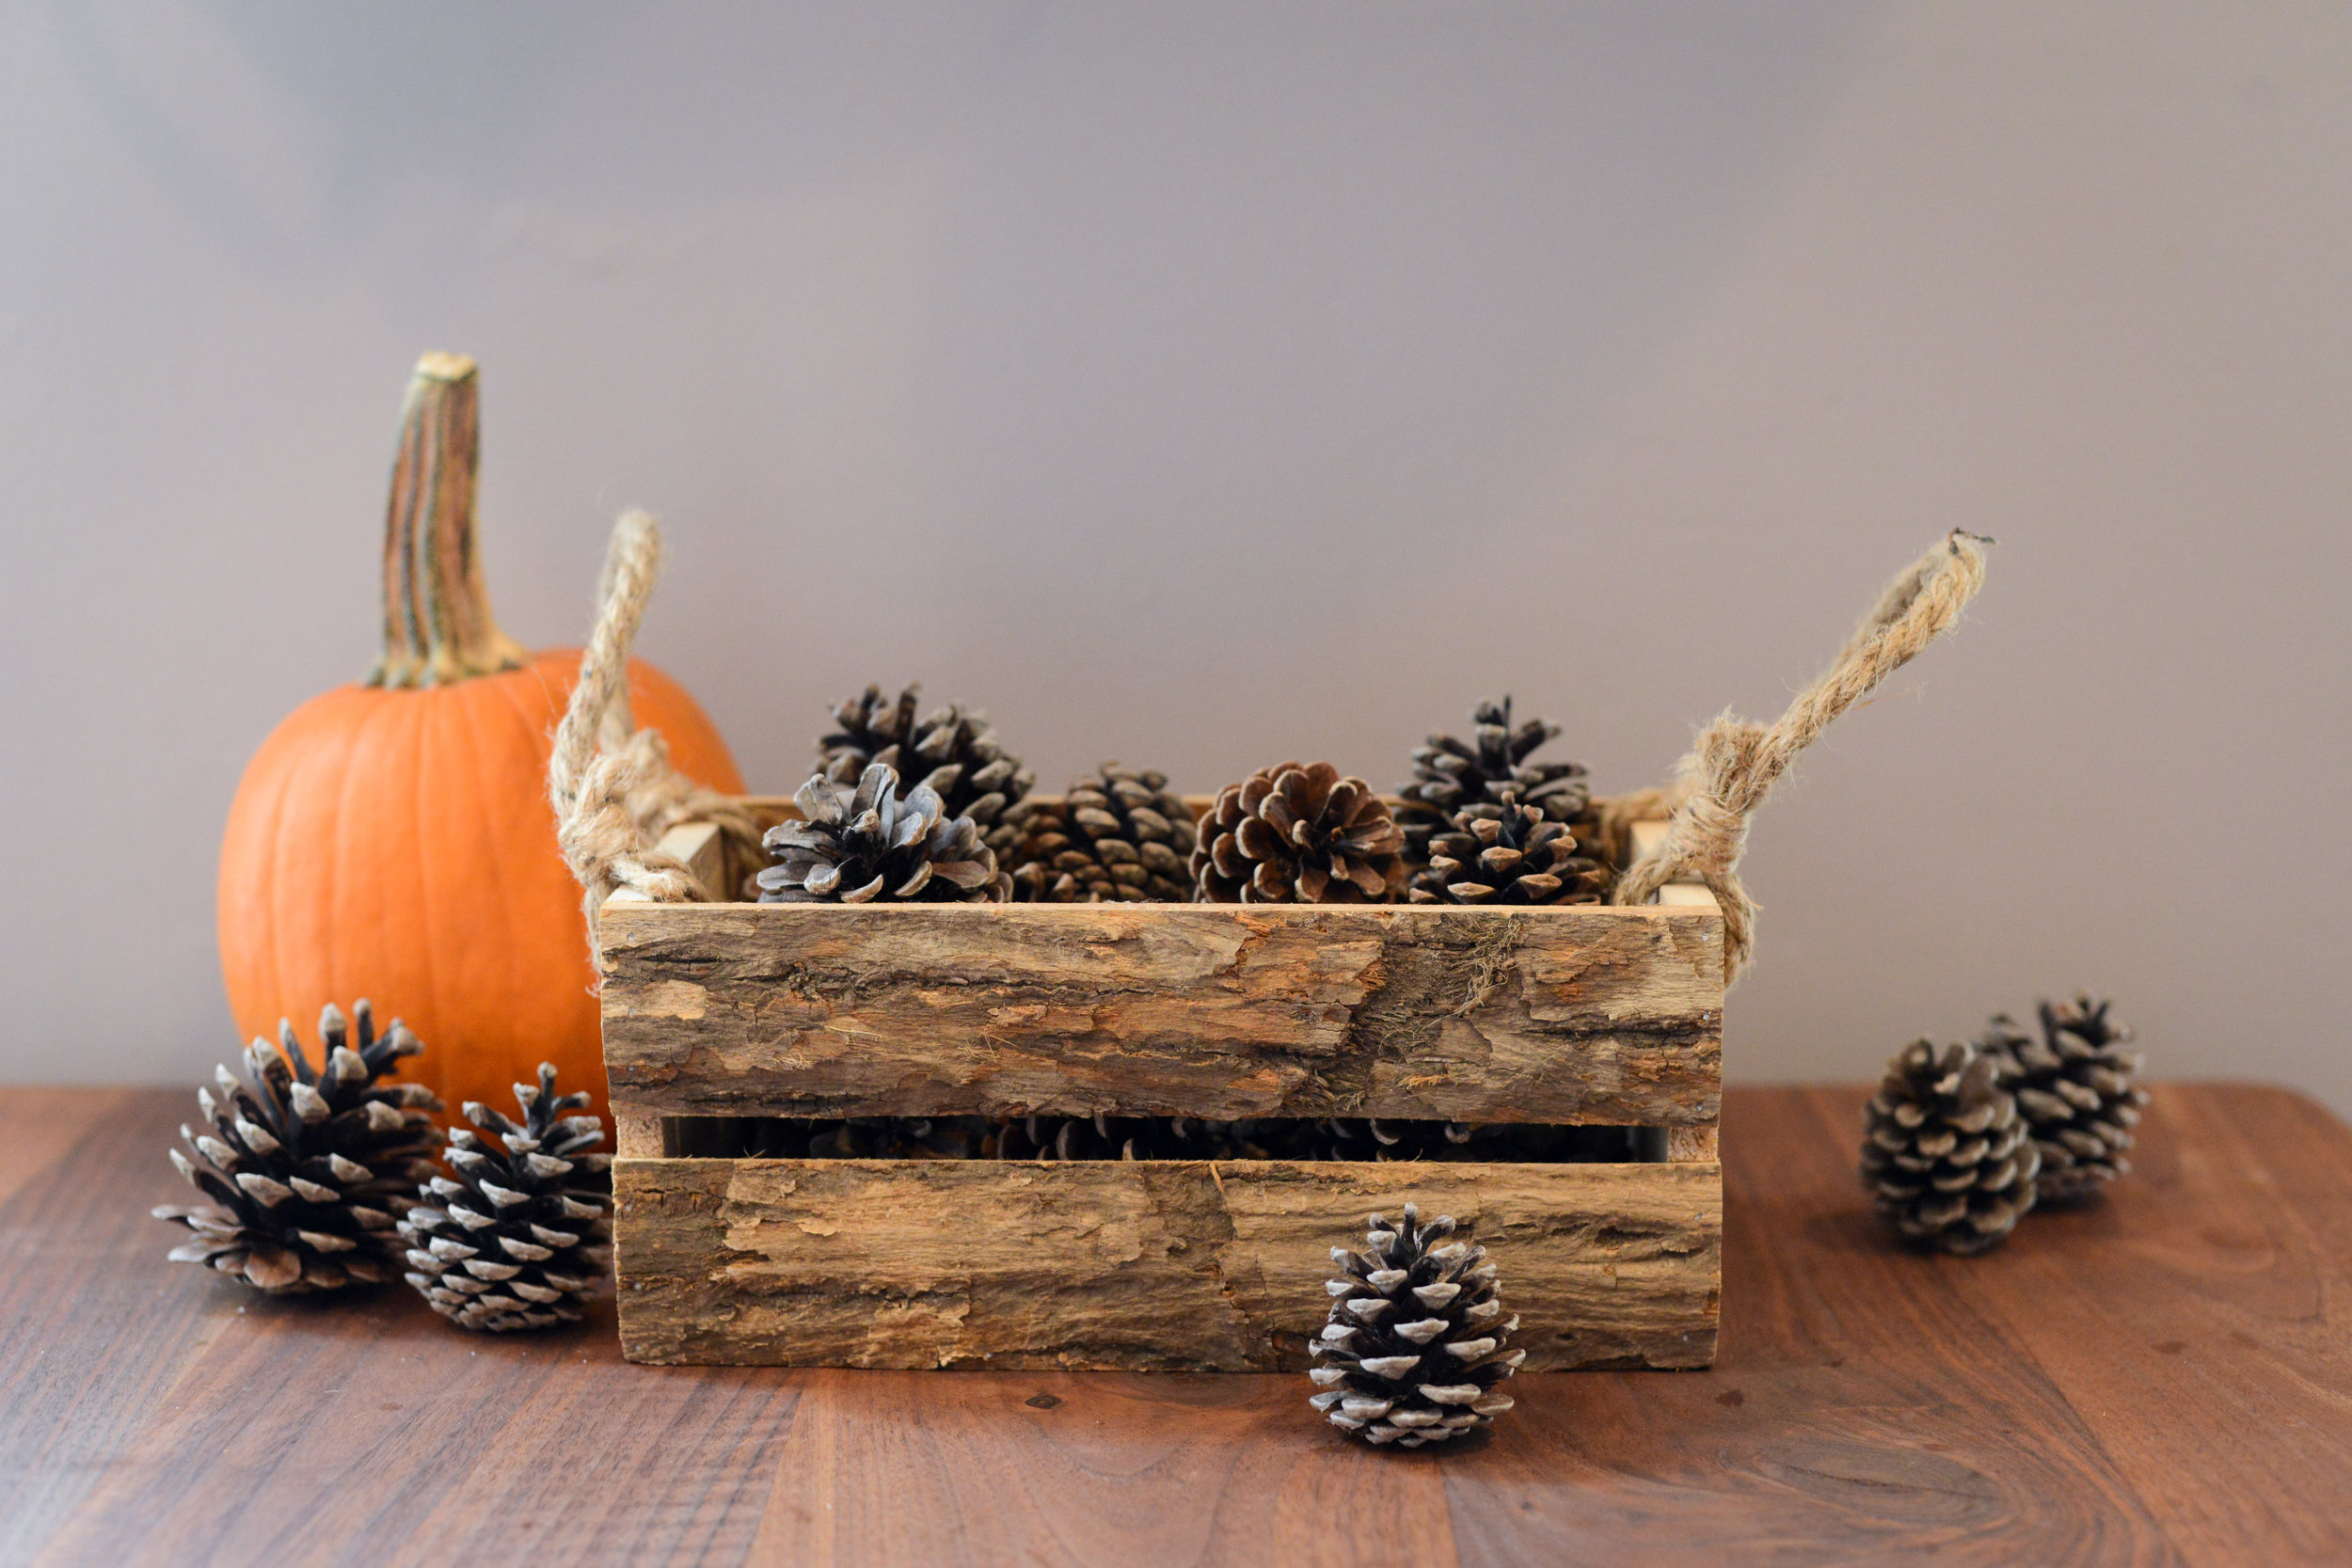 Rustic wooden box for fall